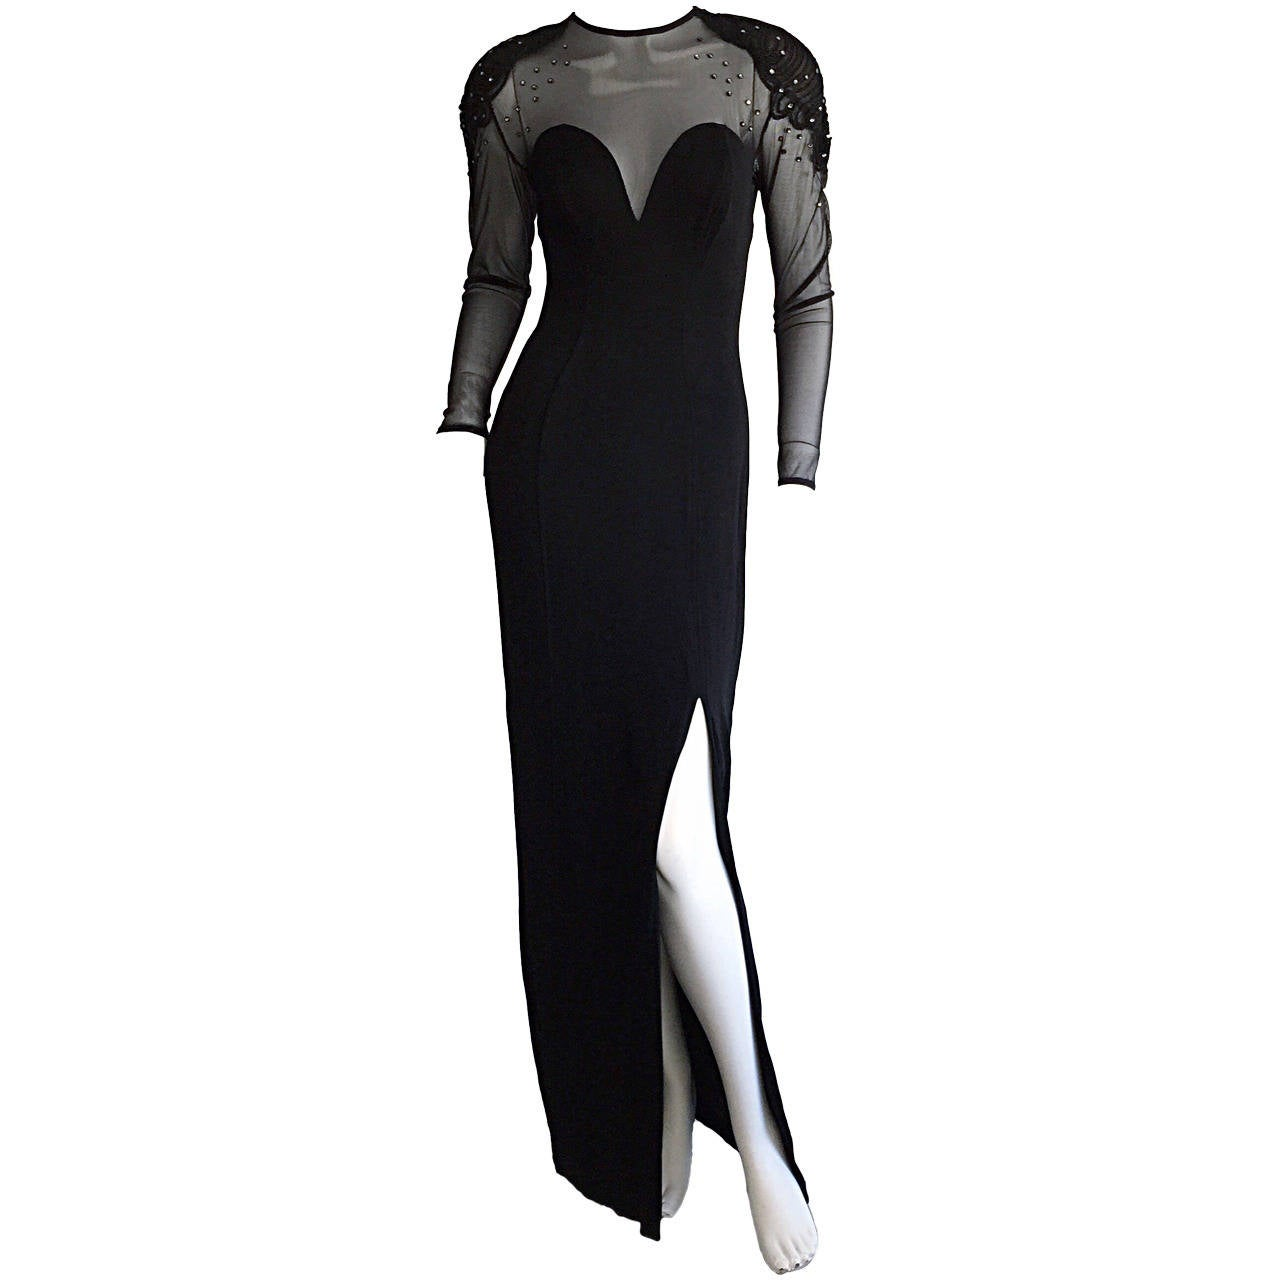 Sexy Vintage 1990s Black Cut - Out Bodycon Dress w/ Rhinestones For Sale